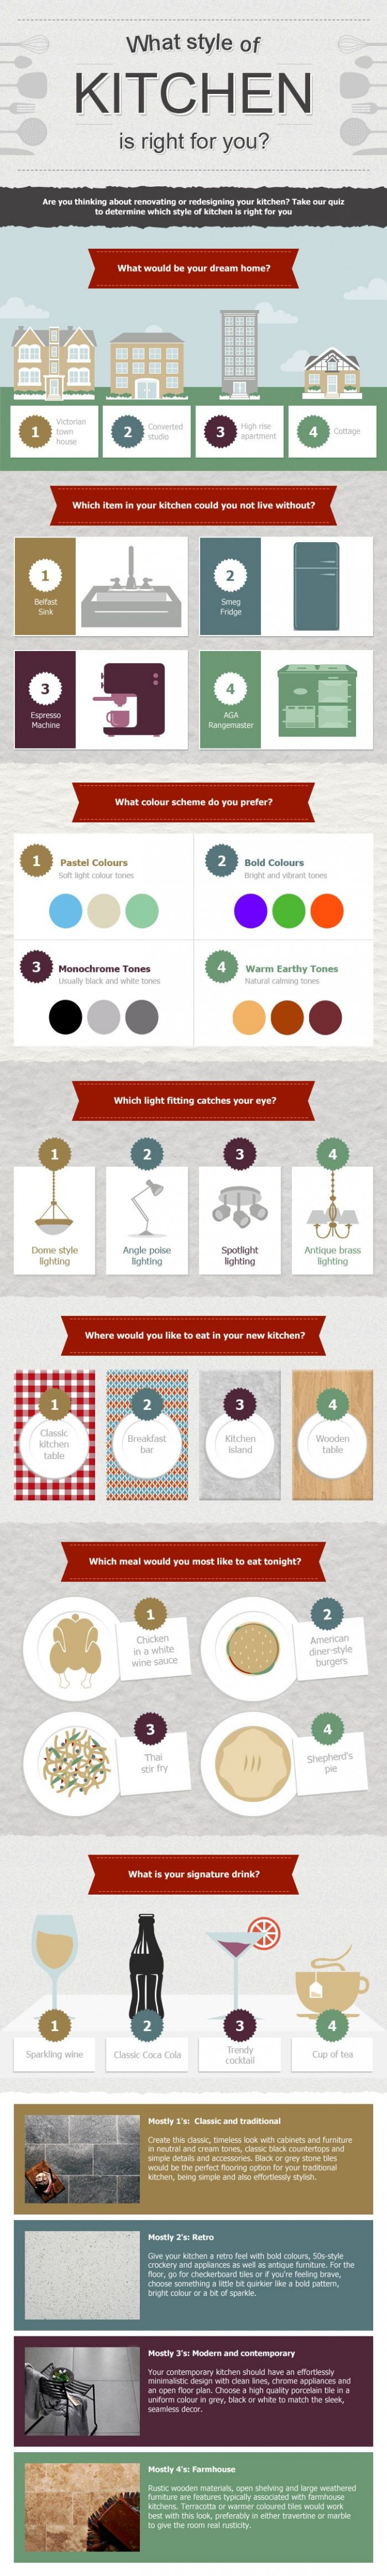 kitchen-renovations-infographic